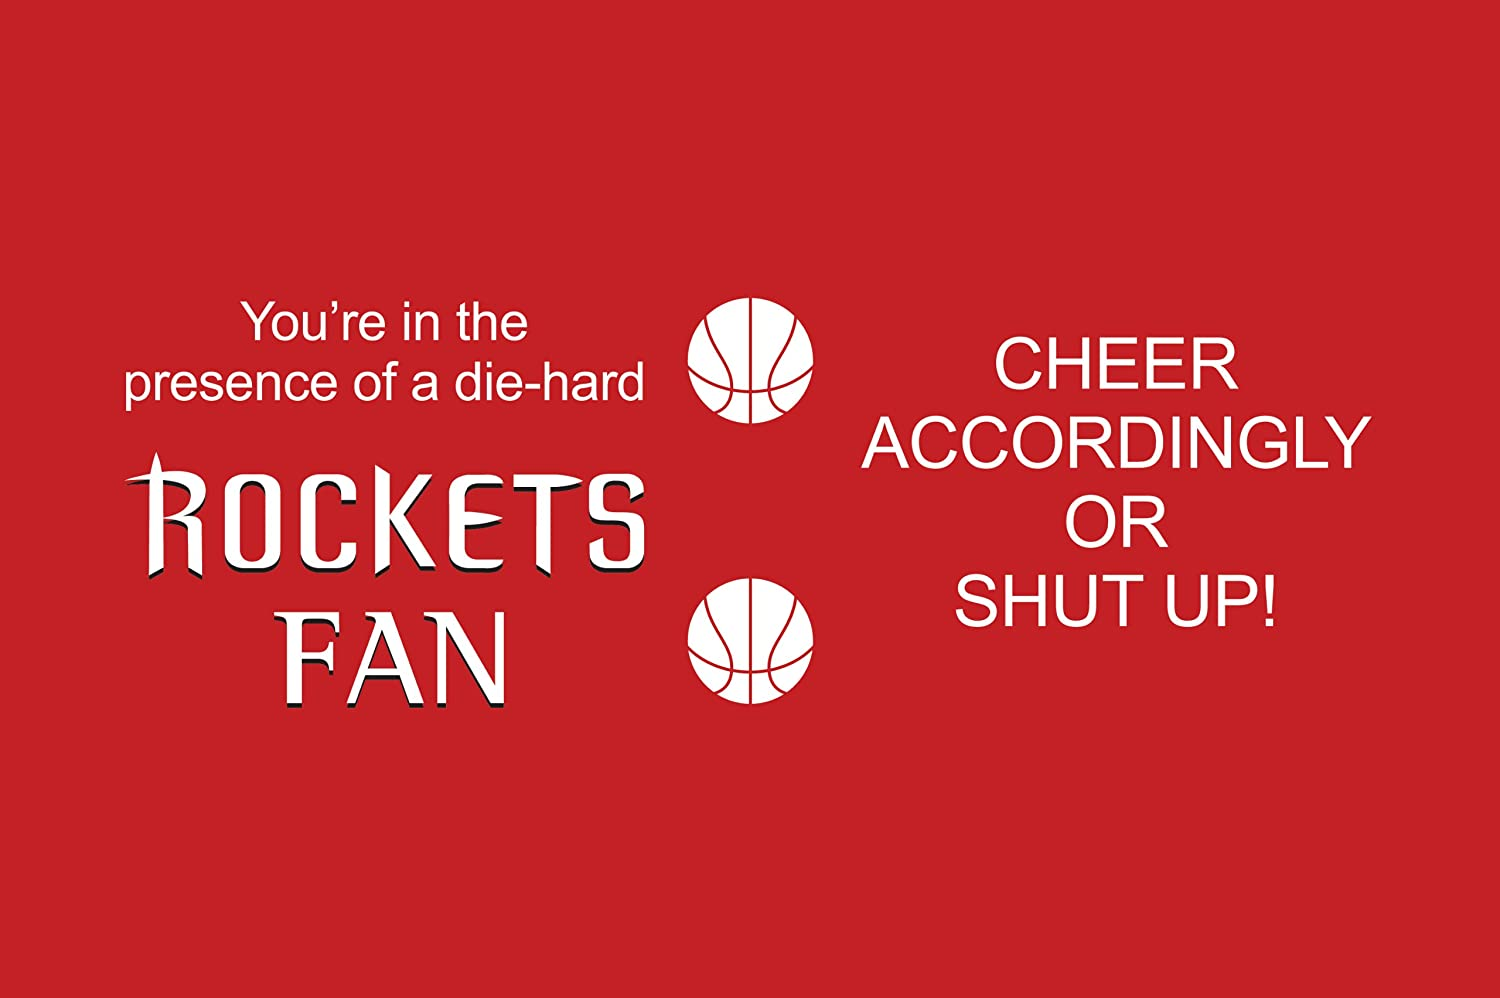 Tree-Free Greetings sg24149 Rockets Basketball Fan Sip N Go Stainless Steel Lined Travel Tumbler 16-Ounce